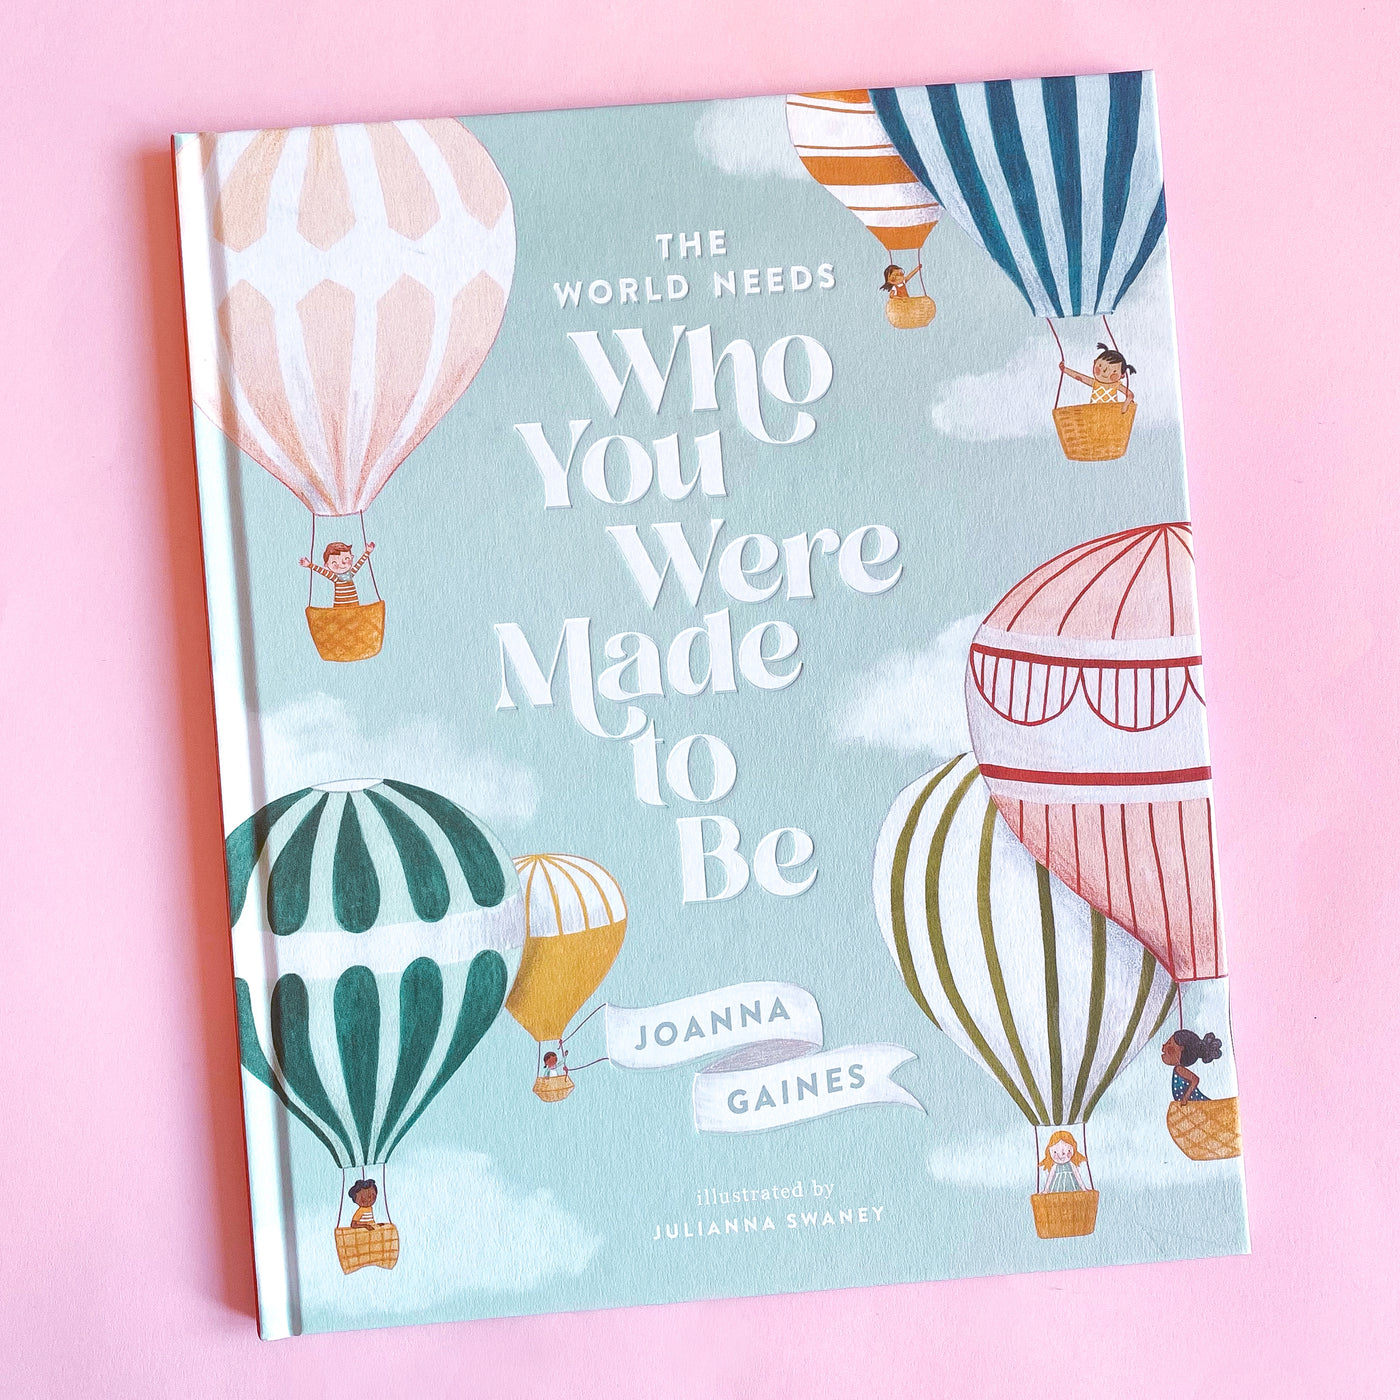 The World Needs Who You Were Made to Be by Joanna Gaines and Julianna Swaney